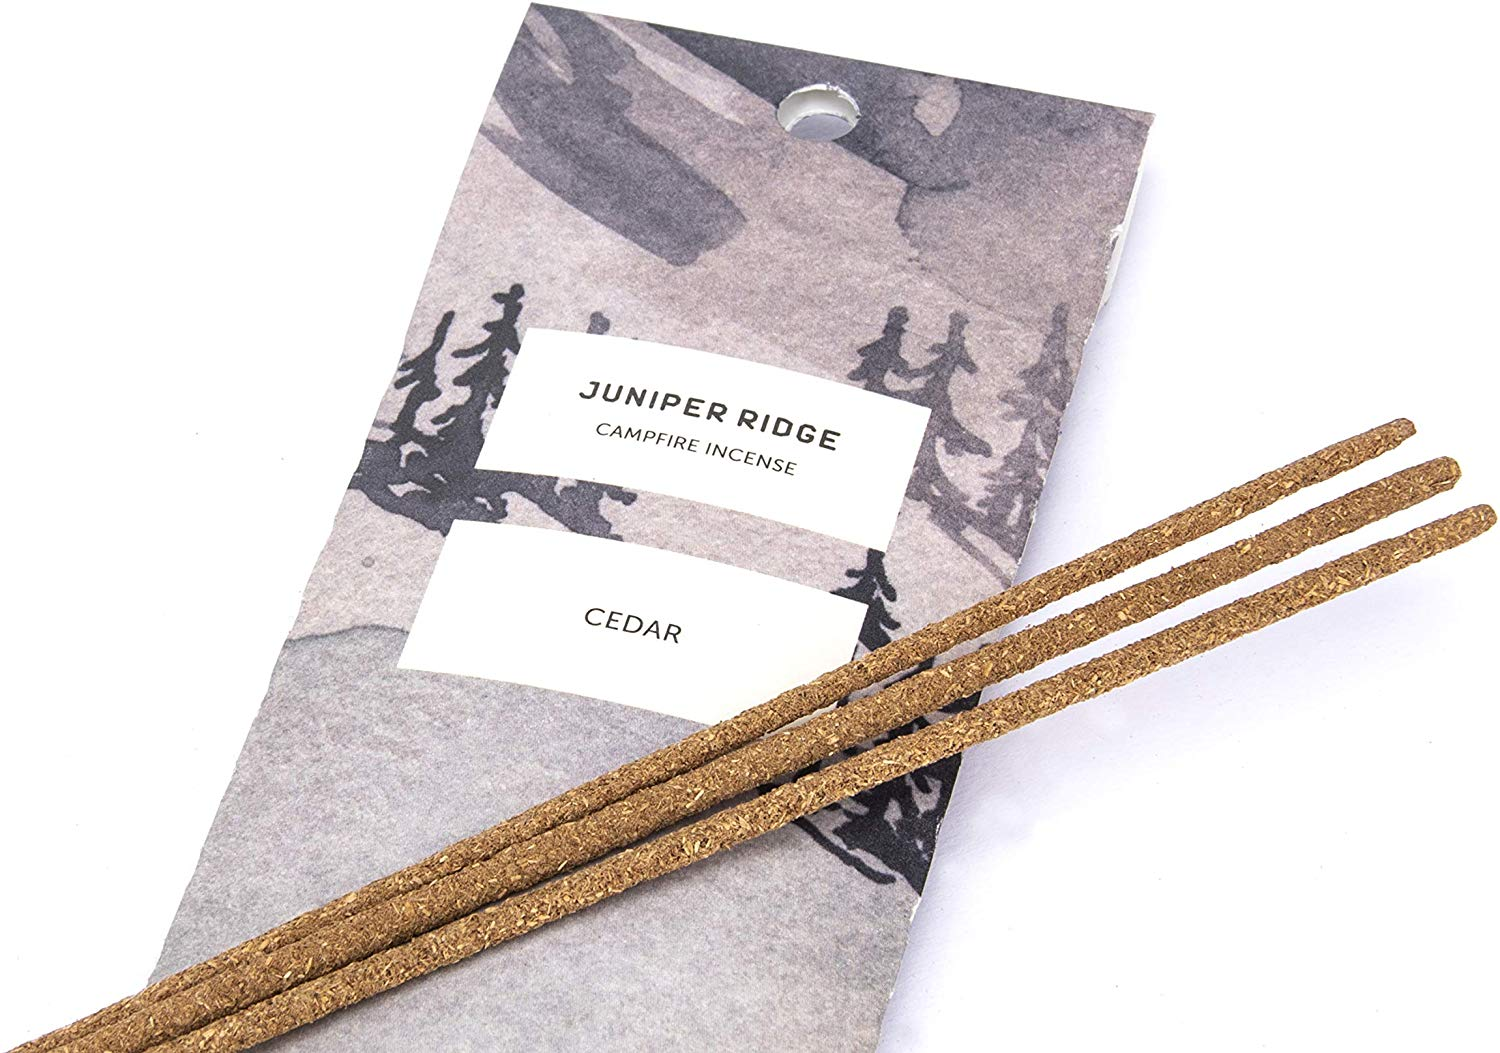 Juniper Ridge Incense Sticks